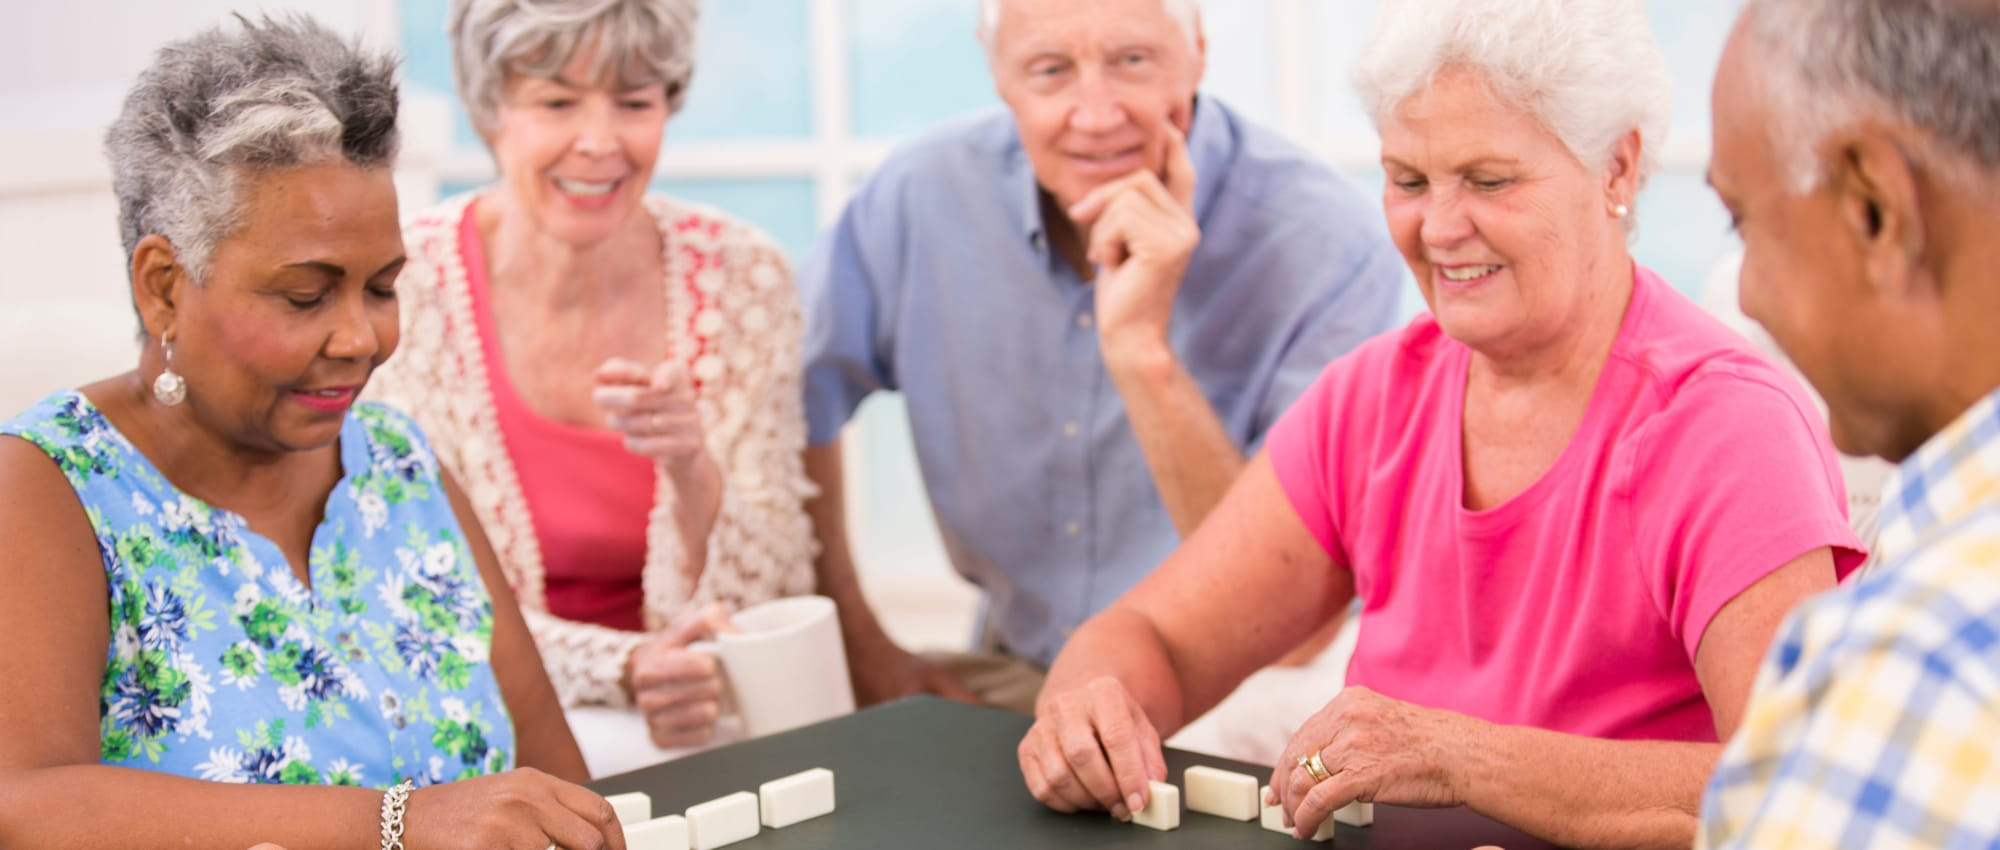 Contact Us at Westminster Memory Care in Lexington, South Carolina